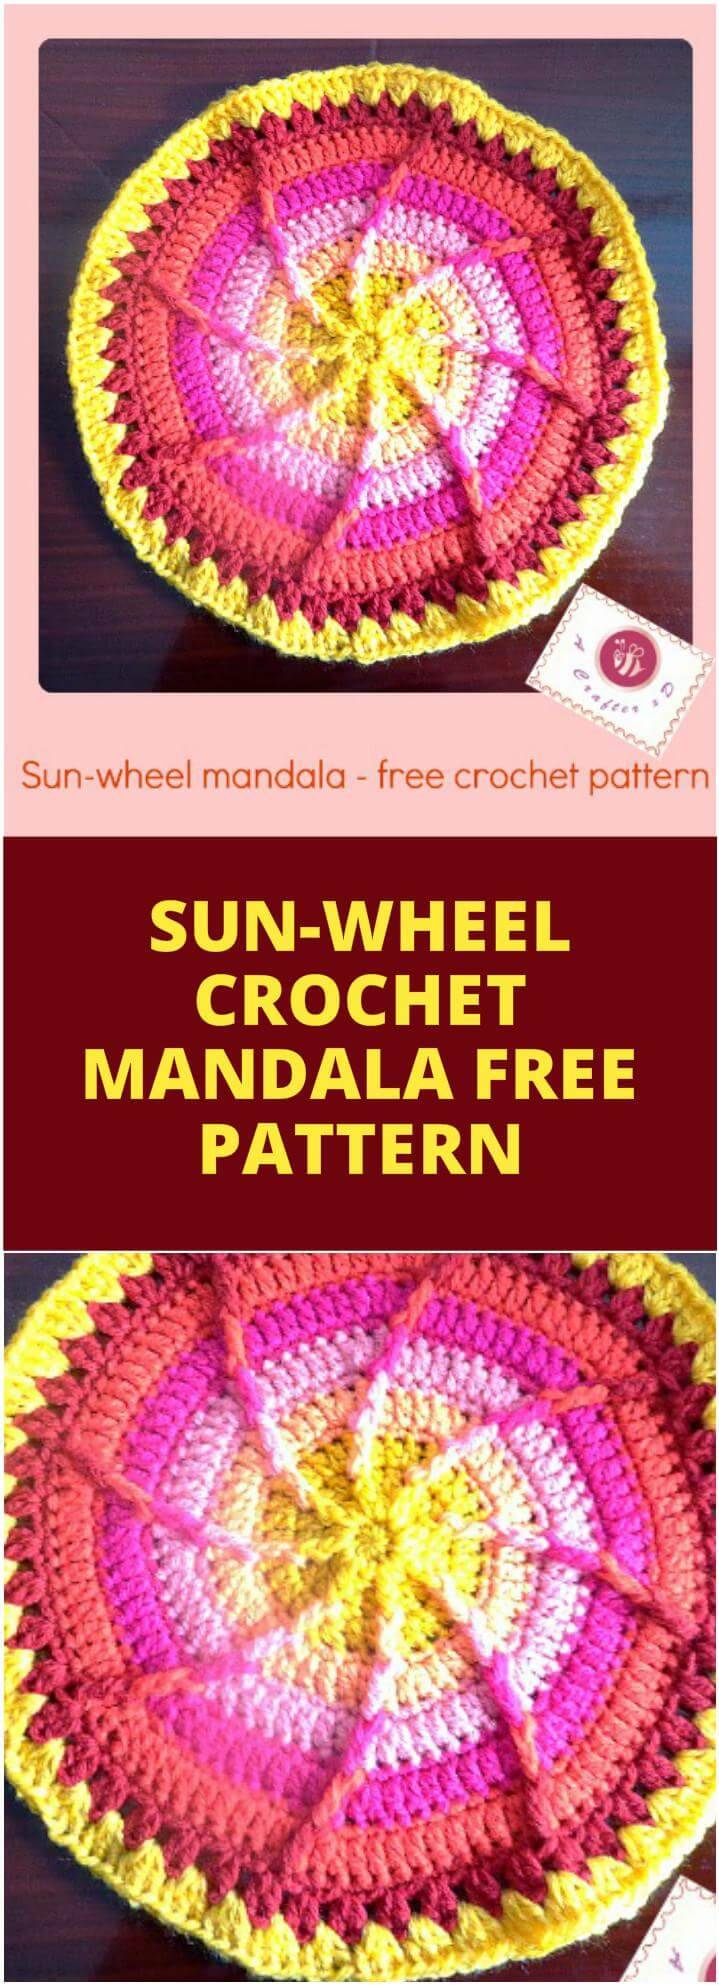 crochet sun-wheel mandala